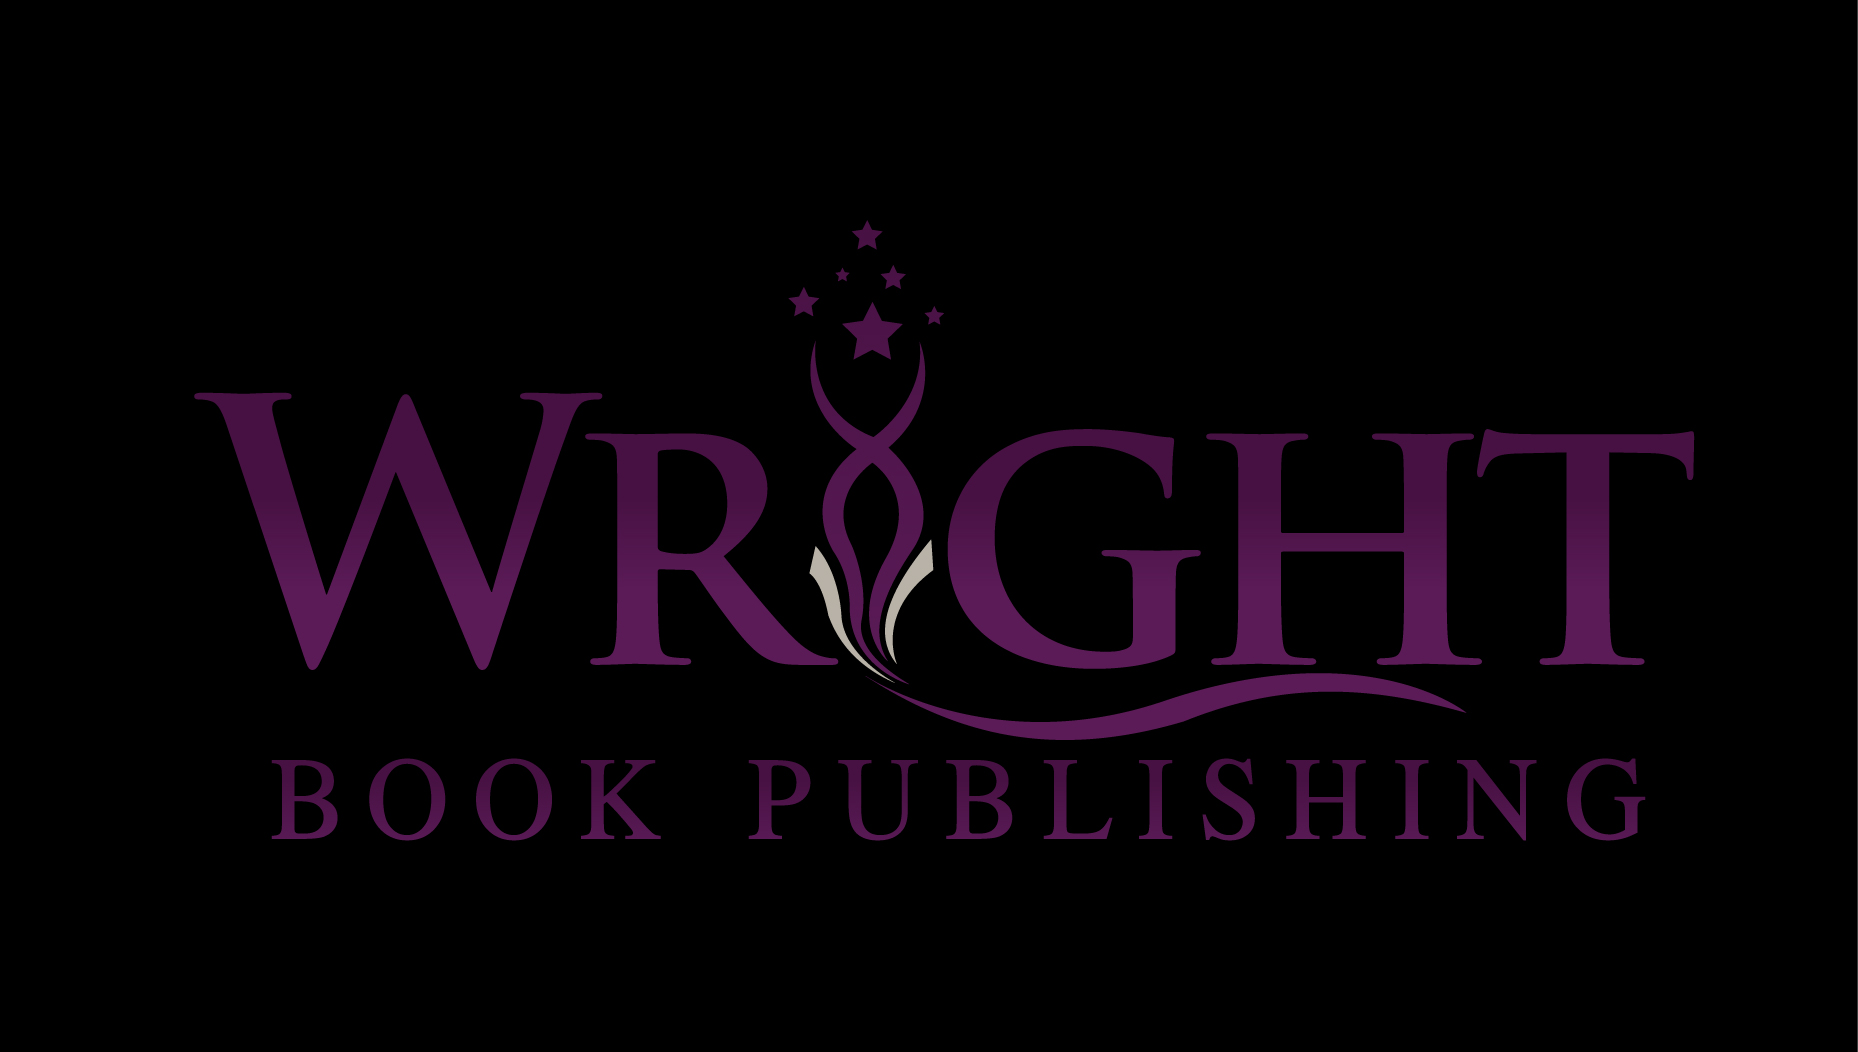 Wright Book Publishing